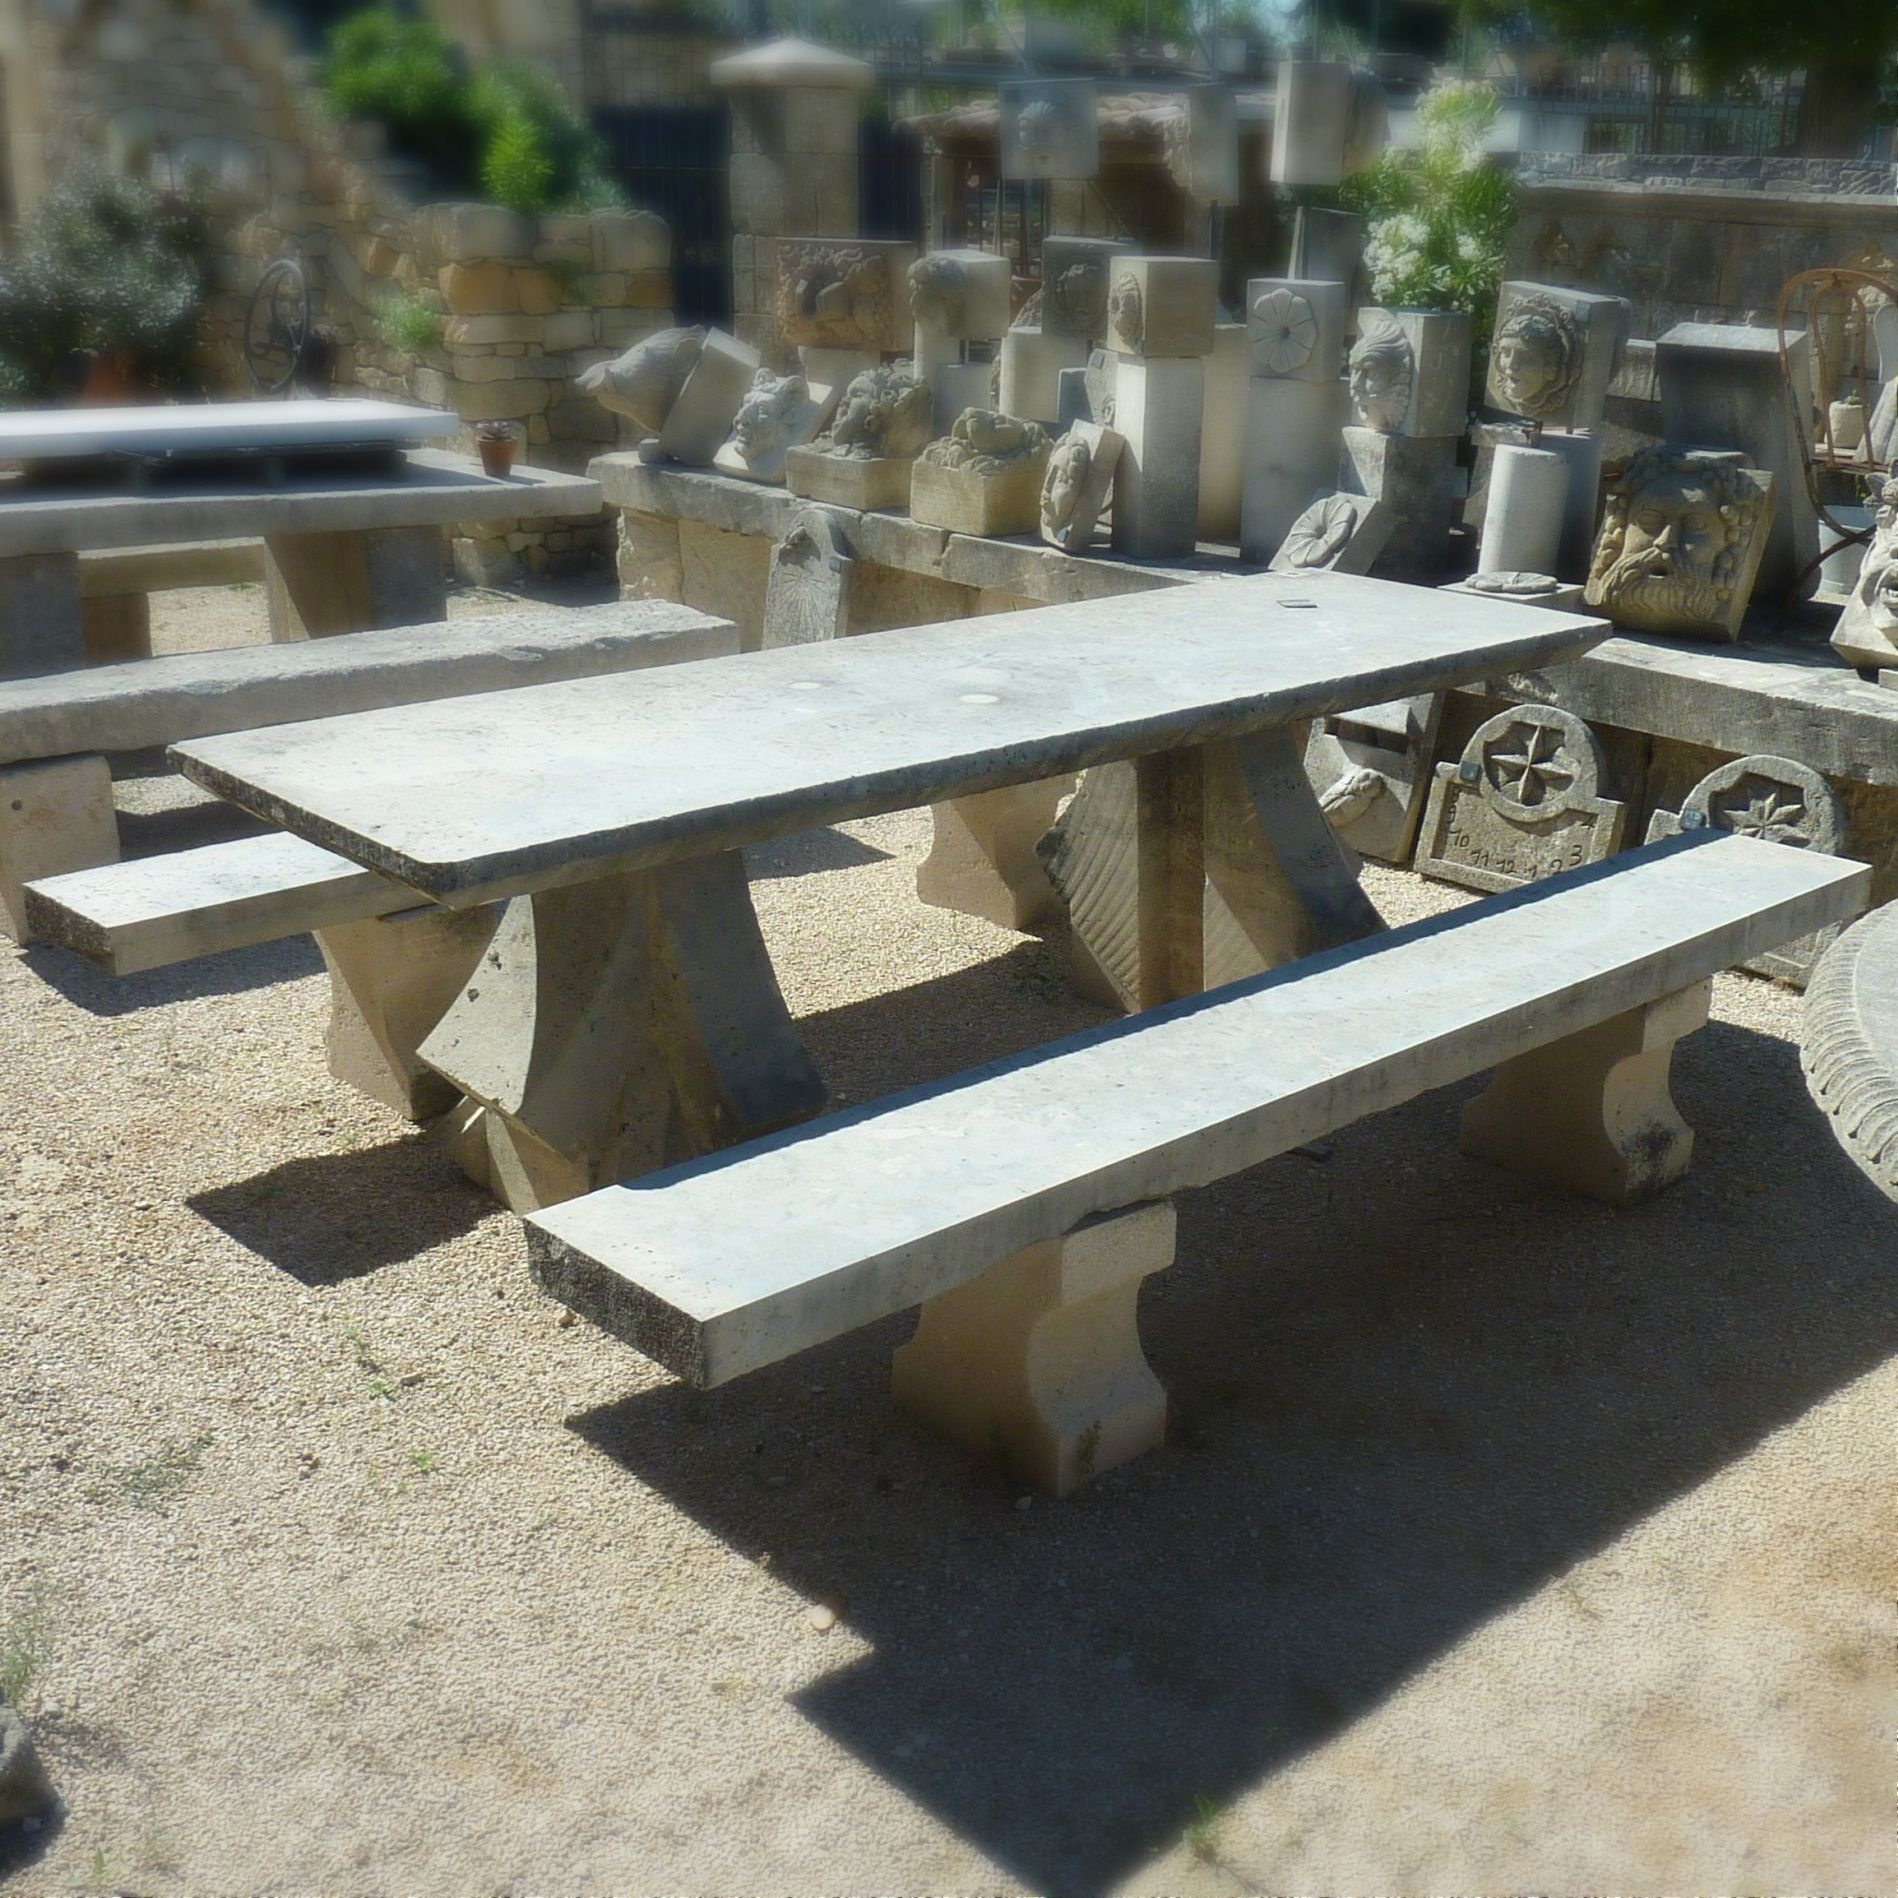 Antique and sustainable garden furniture exposed on our park of pieces of furniture made of old materials near Avignon.